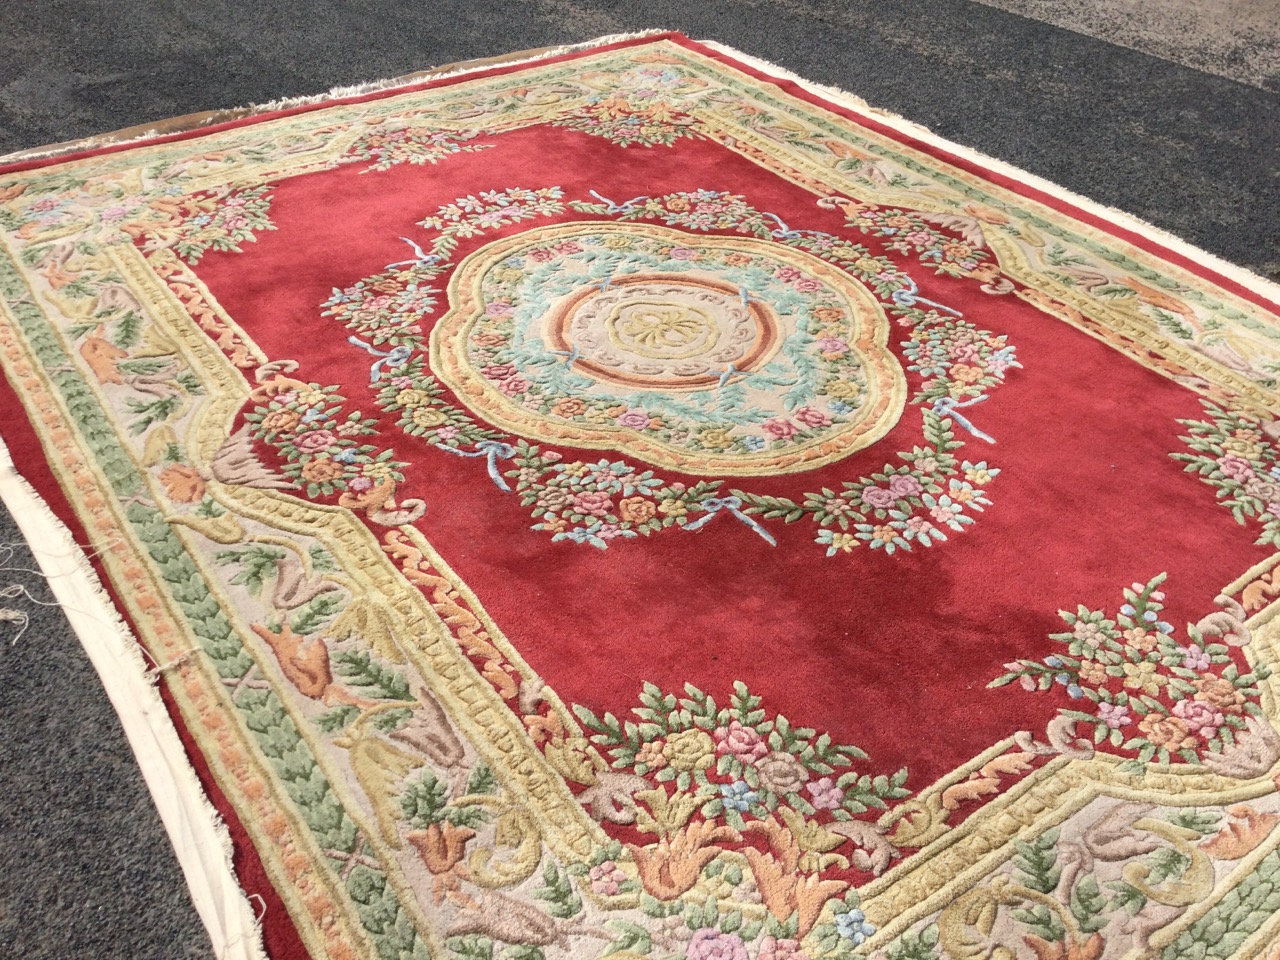 A Chinese thick-pile floral carpet woven with central scalloped medallion framed by ribbon - Image 3 of 3